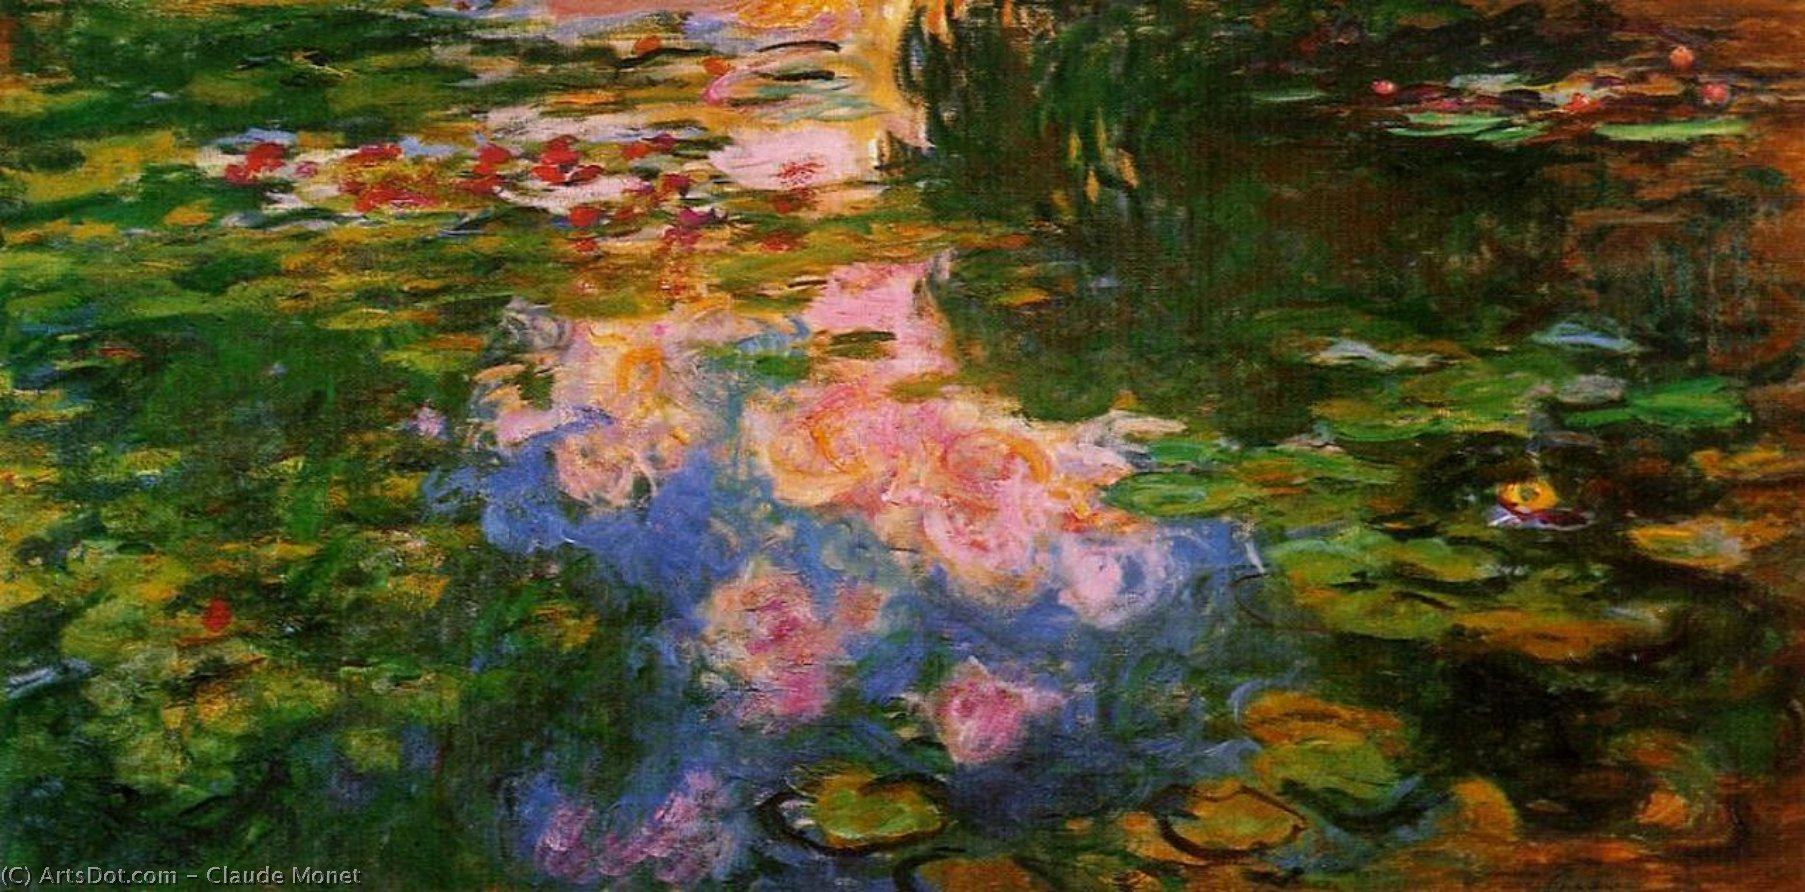 a personal analysis of the painting water lilies by claude monet This is a lesson plan for a tempera painting inspired by monet's water lilies monet water lilies discuss impressionism and the work of claude monet.